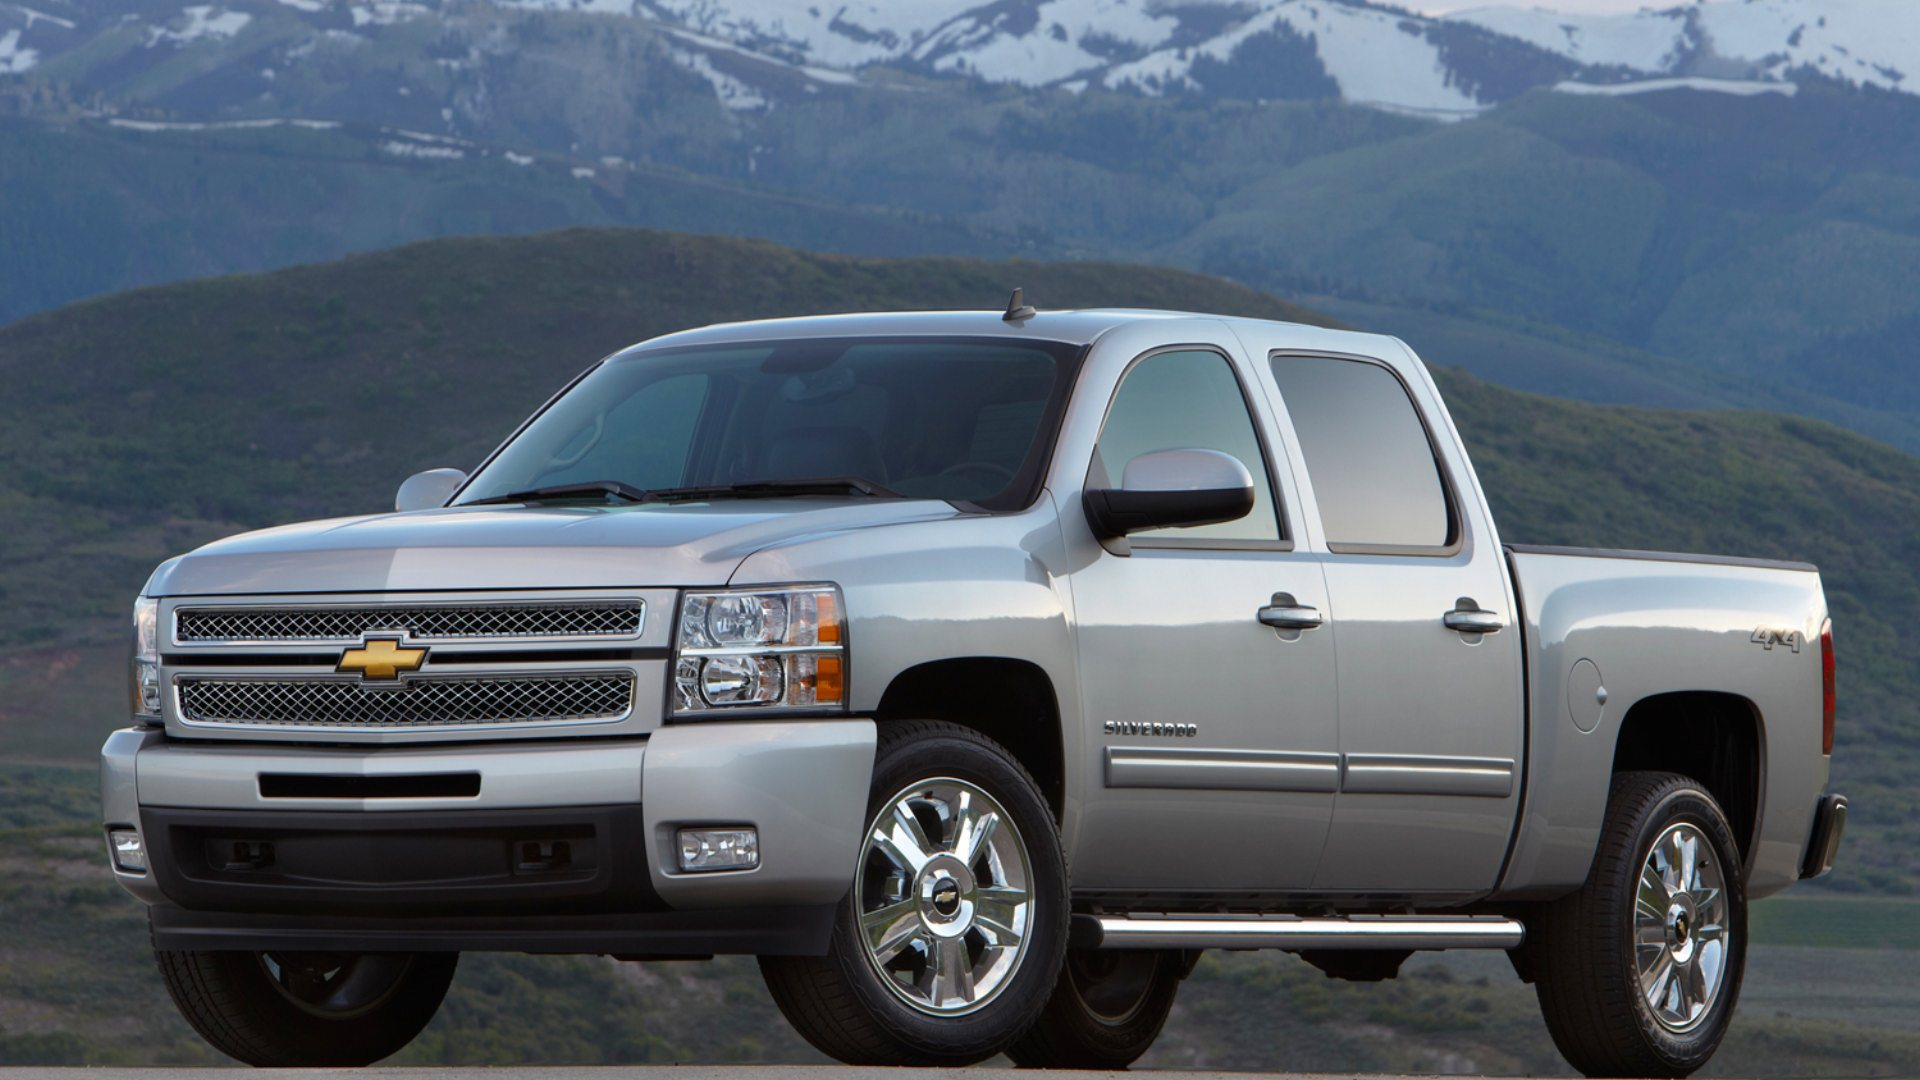 2013 Chevrolet Silverado HD Wallpapers 1920x1080